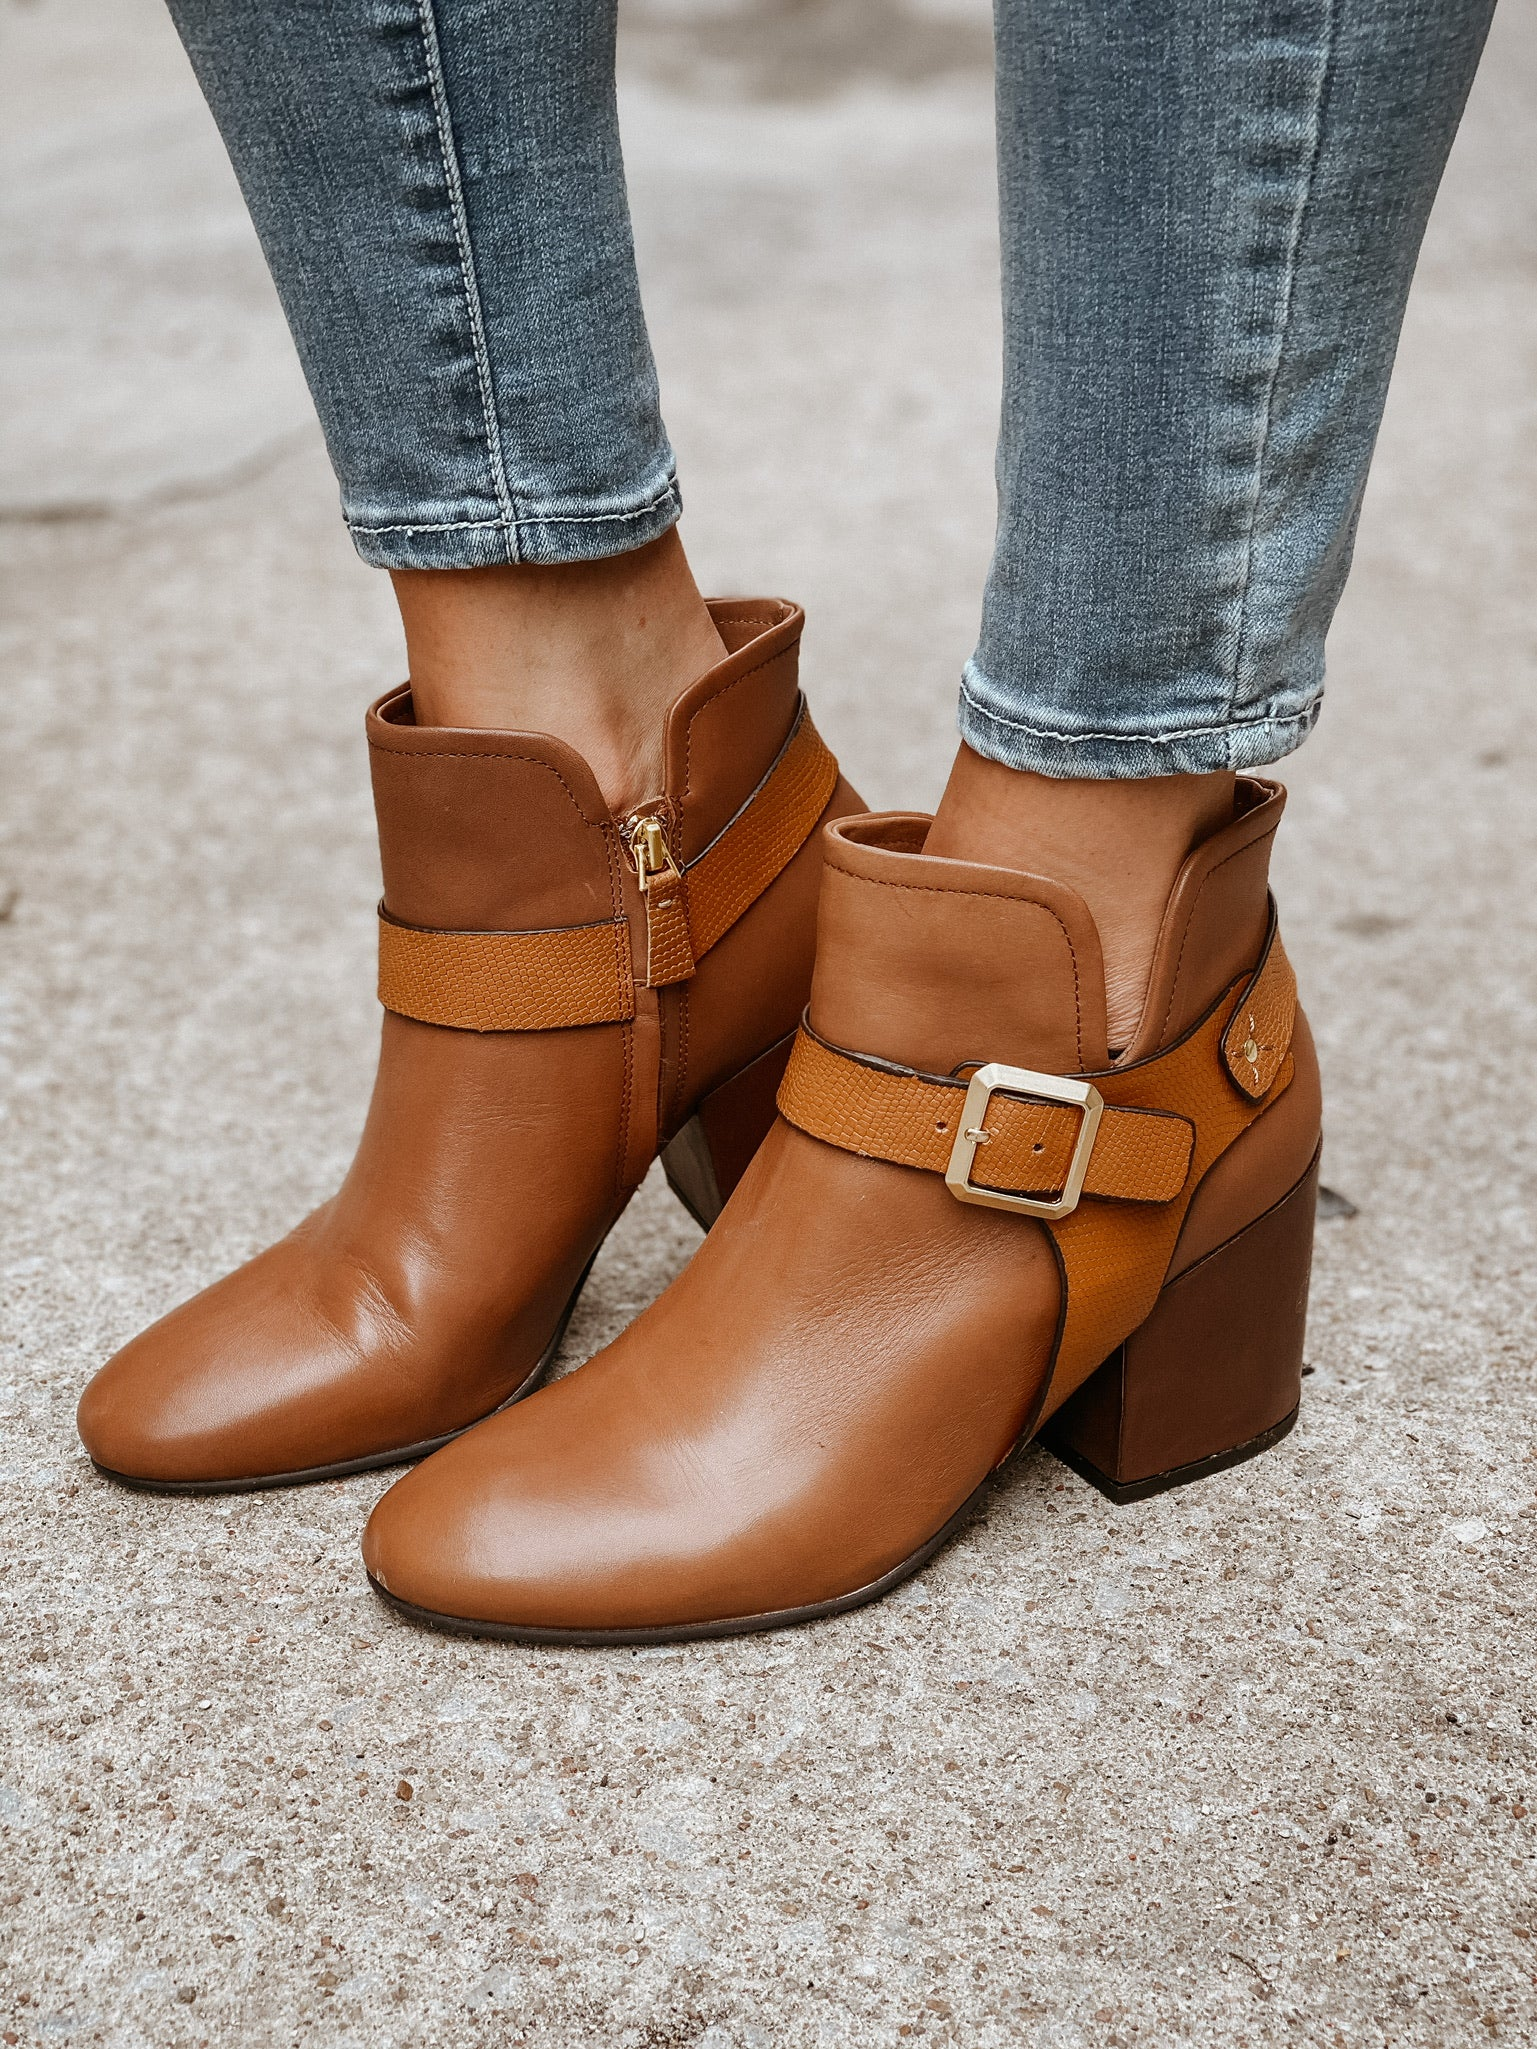 Leilani Chunky Heel Ankle Boot - Sophie